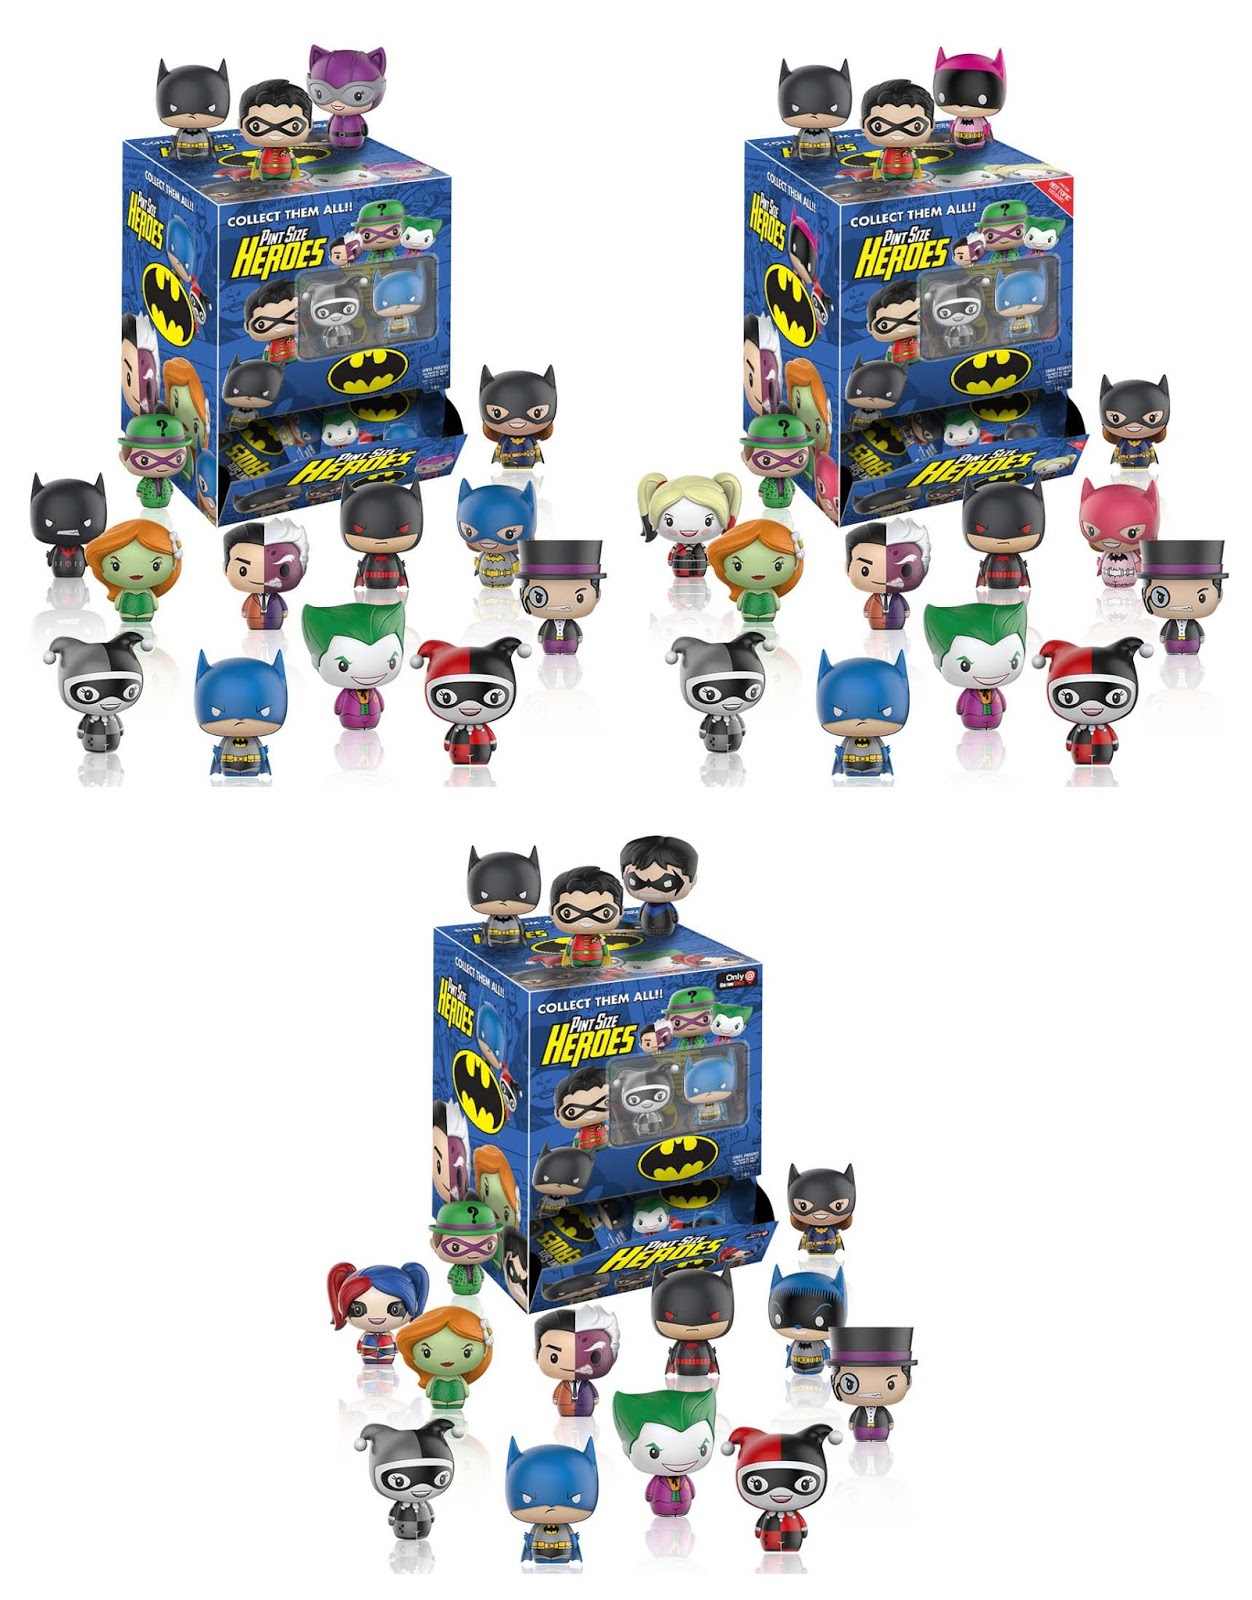 Collecting Toyz Funko Announces Pint Size Heroes Tony Hawk Circuit Boards By Hexbug Power Axle Set Innovation First Announced A New Line Of Vinyl Figures Called These Stand 15 Tall They Are Mix Between And Pop Dorbz The Ones To Be